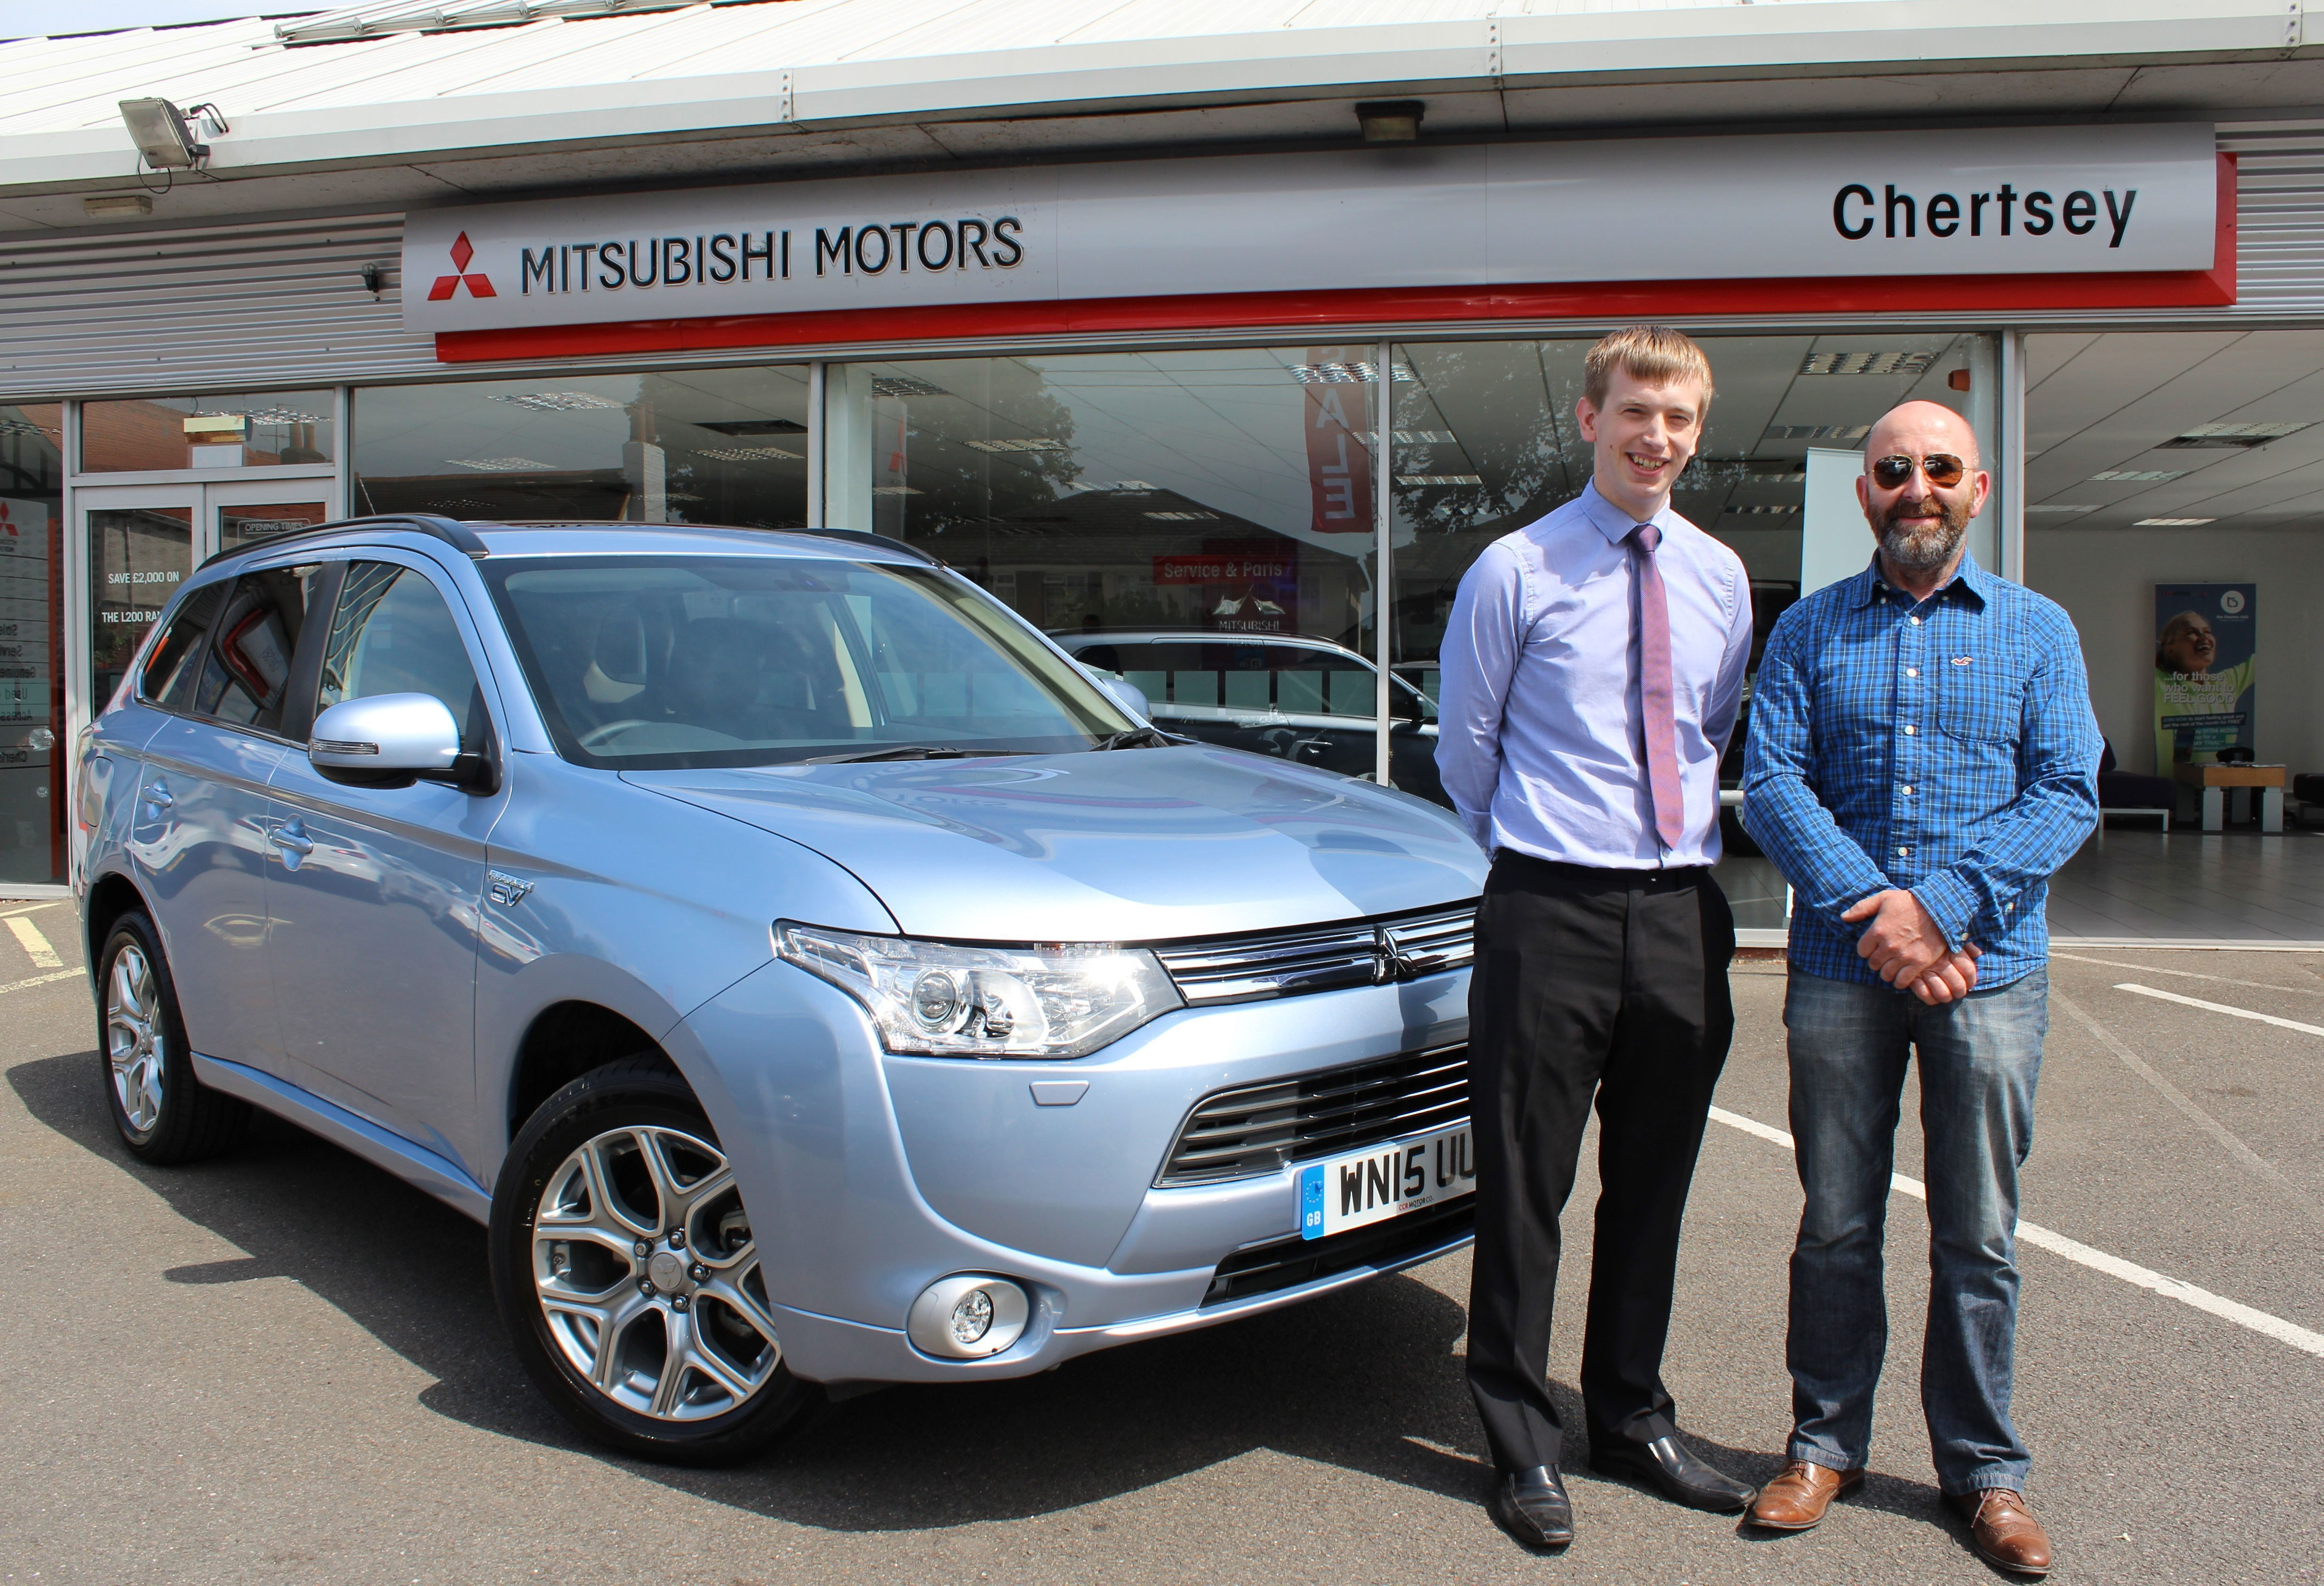 LUCKY WINNER SCOOPS AN OUTLANDER PHEV WITH CHERTSEY MITSUBISHI